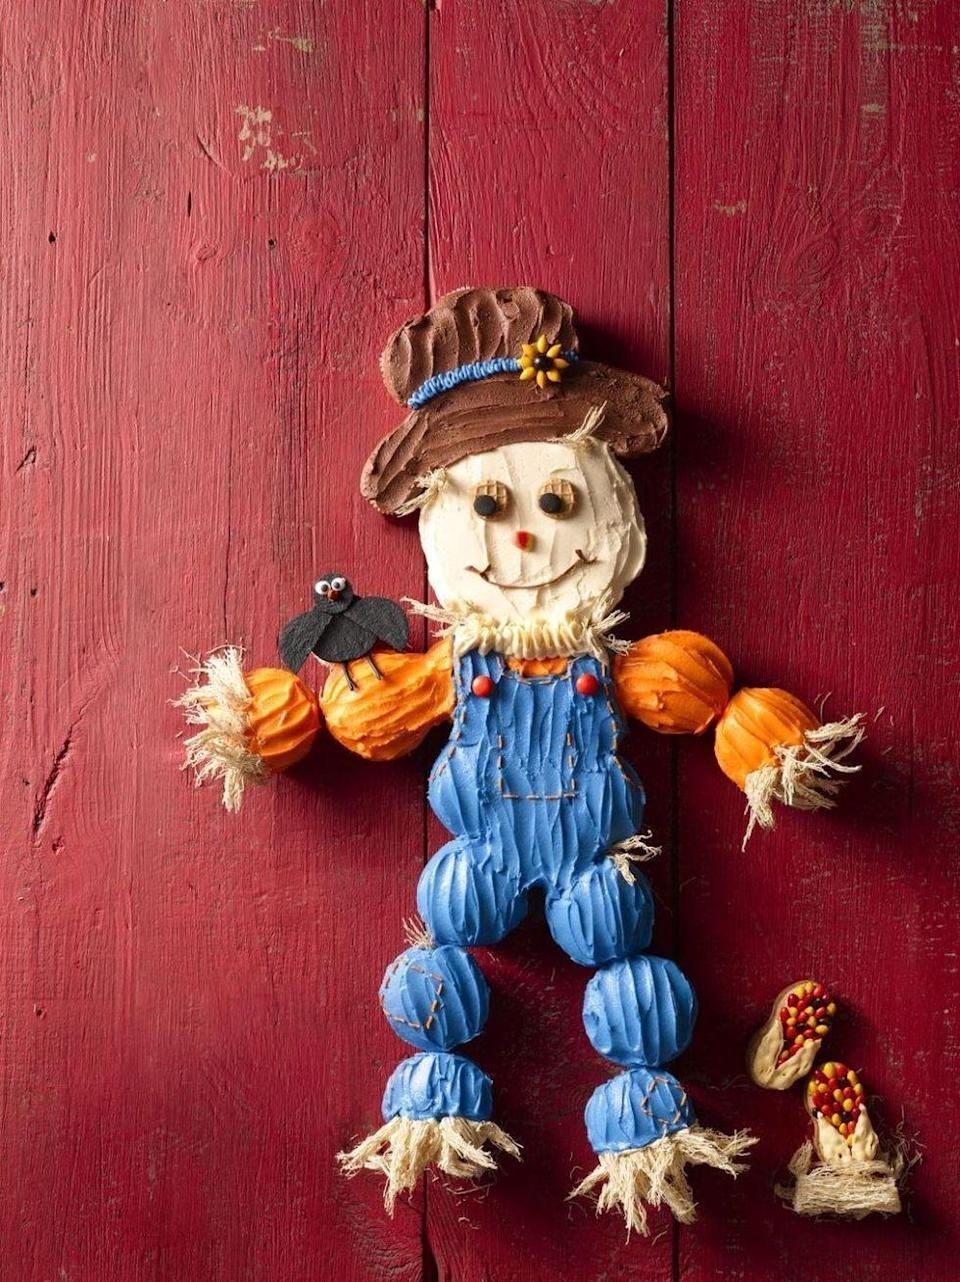 "<p>Pre-made cupcakes, fun decorations, and delicious homemade buttercream make this cute autumnal centerpiece a cinch to put together.</p><p><em><a href=""https://www.womansday.com/food-recipes/food-drinks/recipes/a56159/cupcake-scarecrow-recipe/"" rel=""nofollow noopener"" target=""_blank"" data-ylk=""slk:Get the recipe from Woman's Day »"" class=""link rapid-noclick-resp"">Get the recipe from Woman's Day »</a></em></p>"